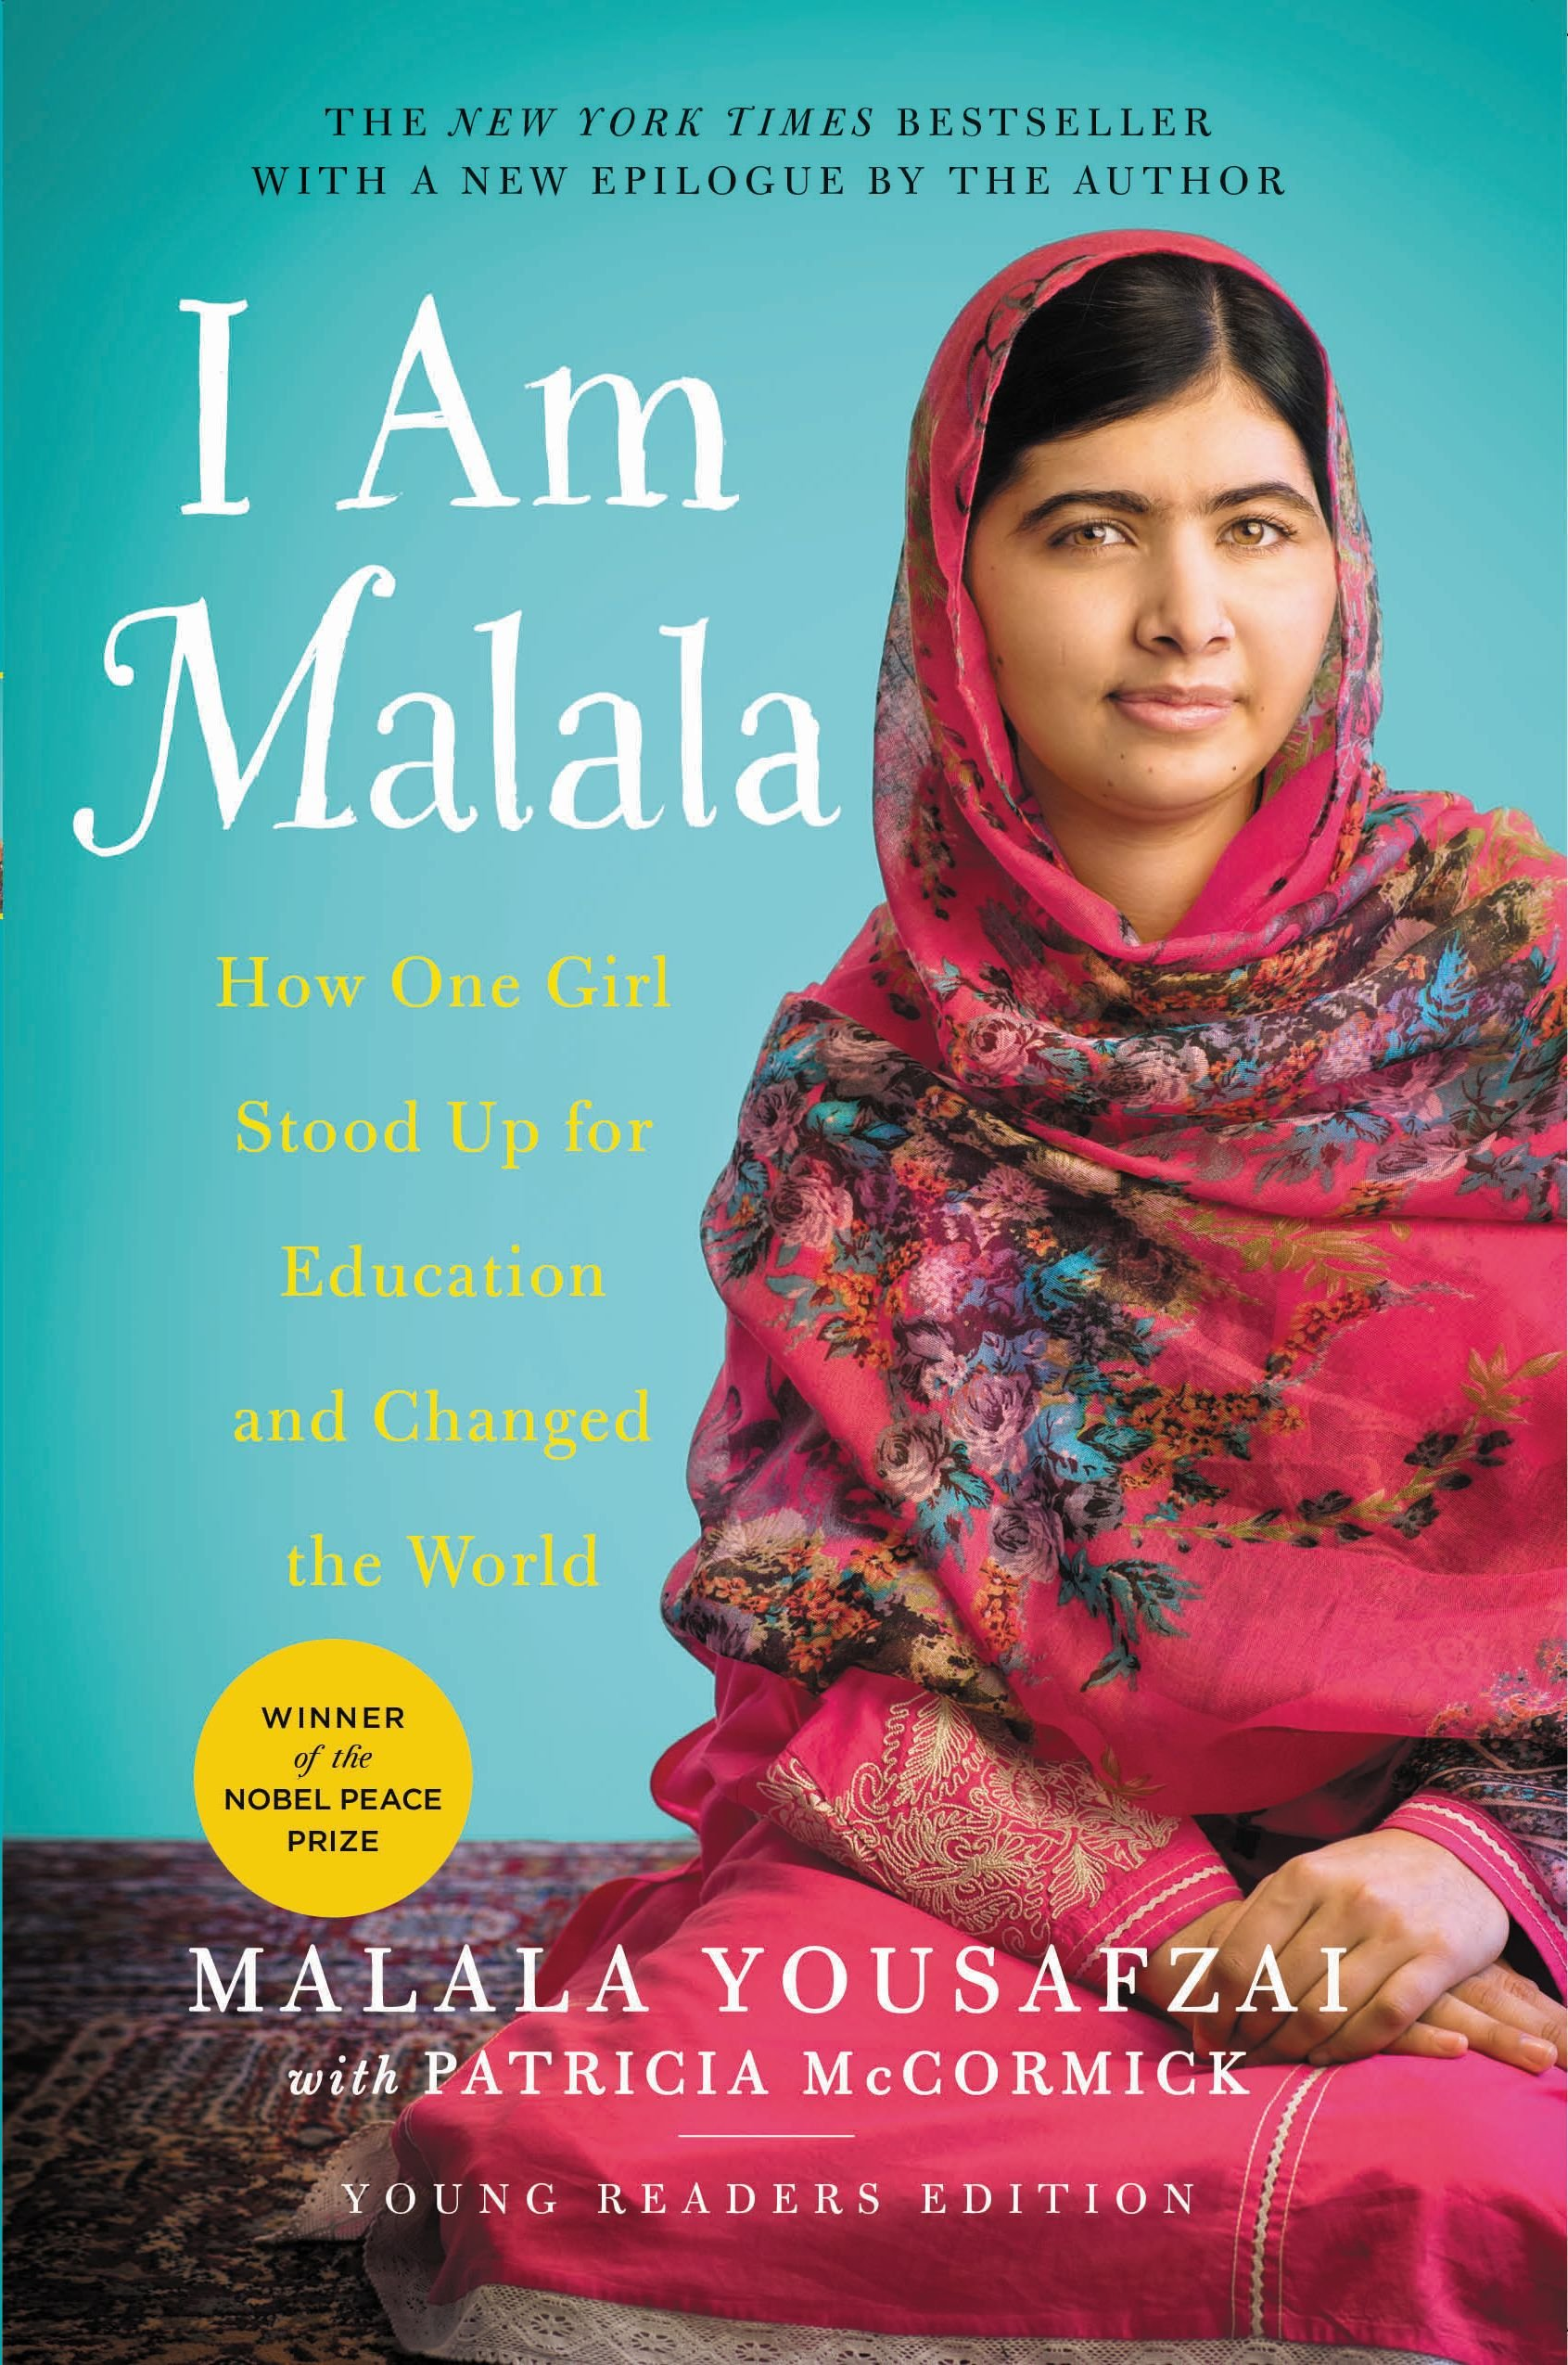 1) I Am Malala - By Malala Yousafzai